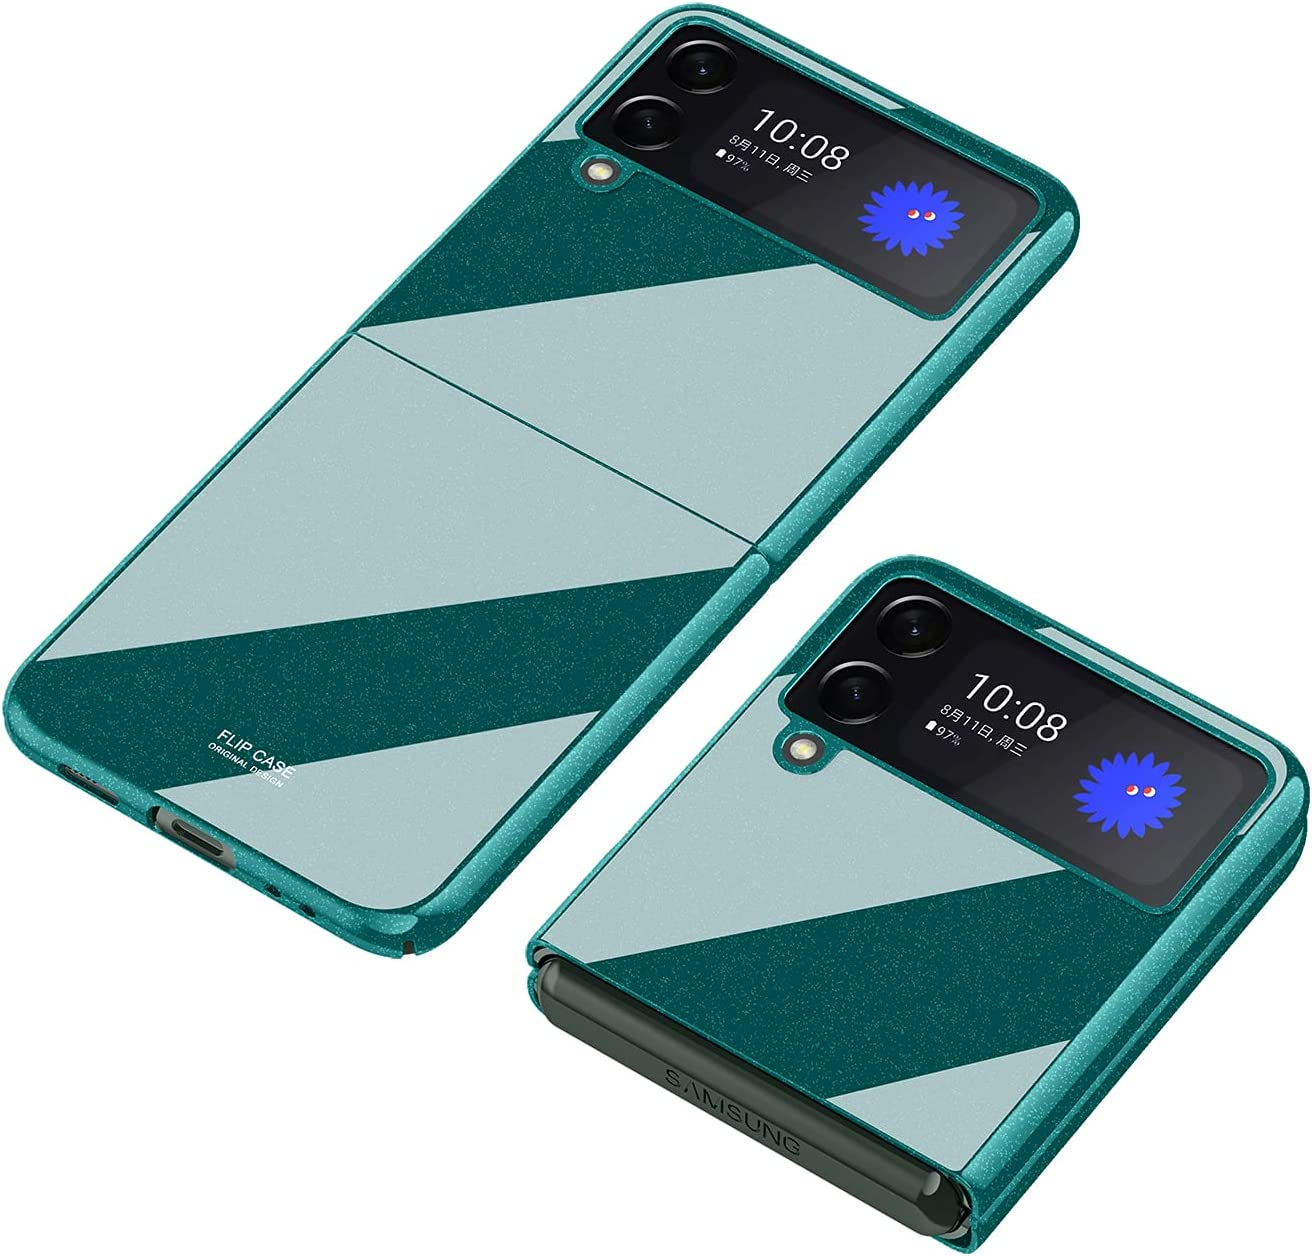 SHBDZGS for Samsung Galaxy Z Flip 3 Case Luxury Plastic Plating Crystal Shockproof Protection Finish Bumper Cover Case for Samsung Galaxy Z Flip 3 5G (Green)